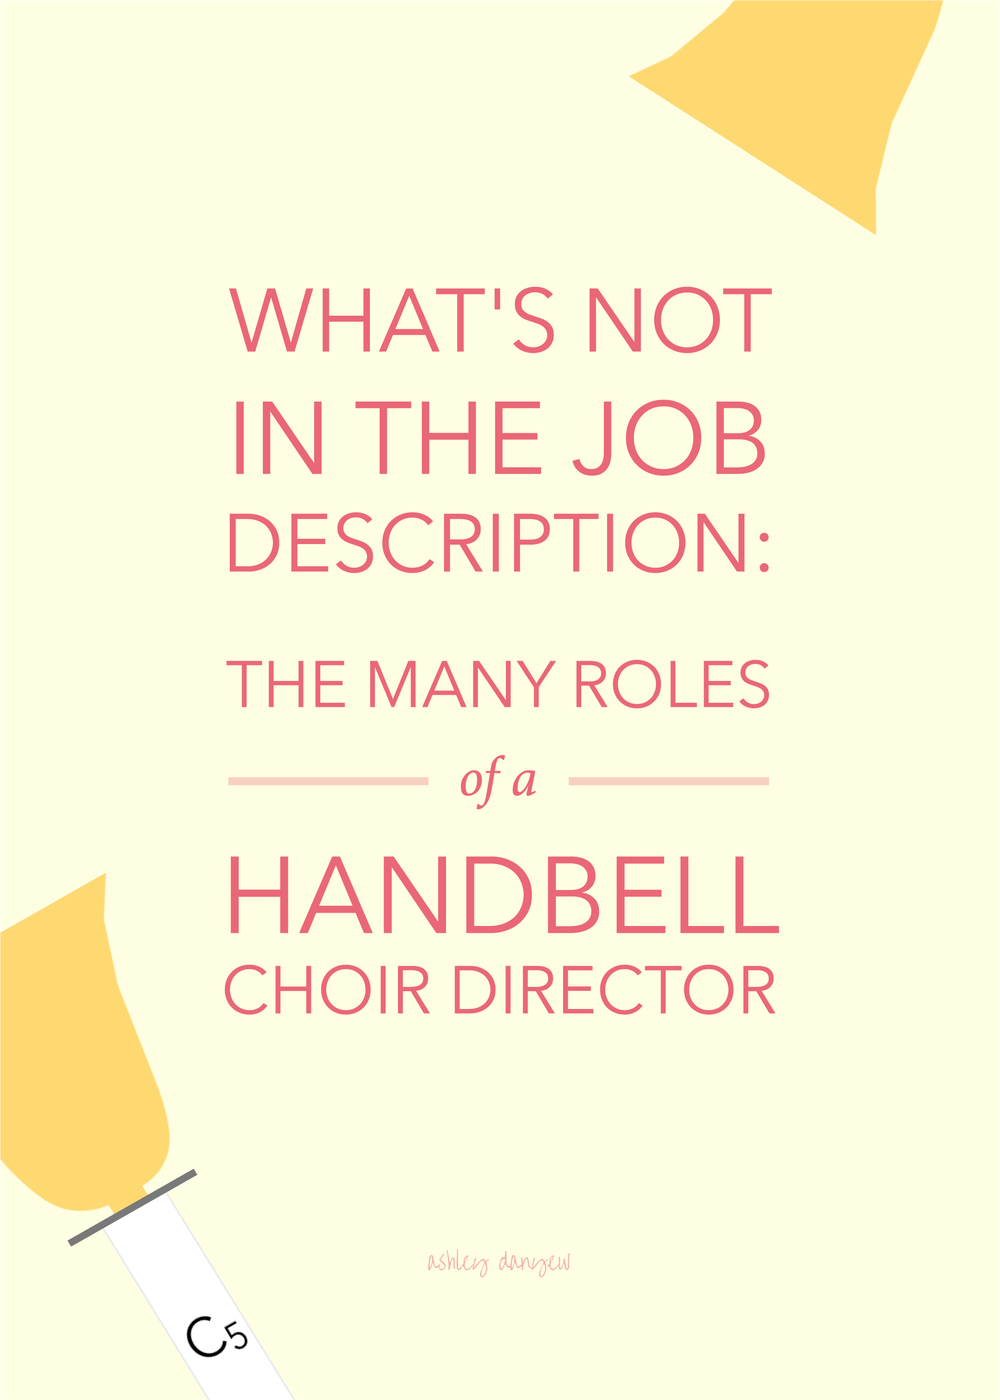 What's Not in the Job Description - The Many Roles of a Handbell Choir Director-56.png